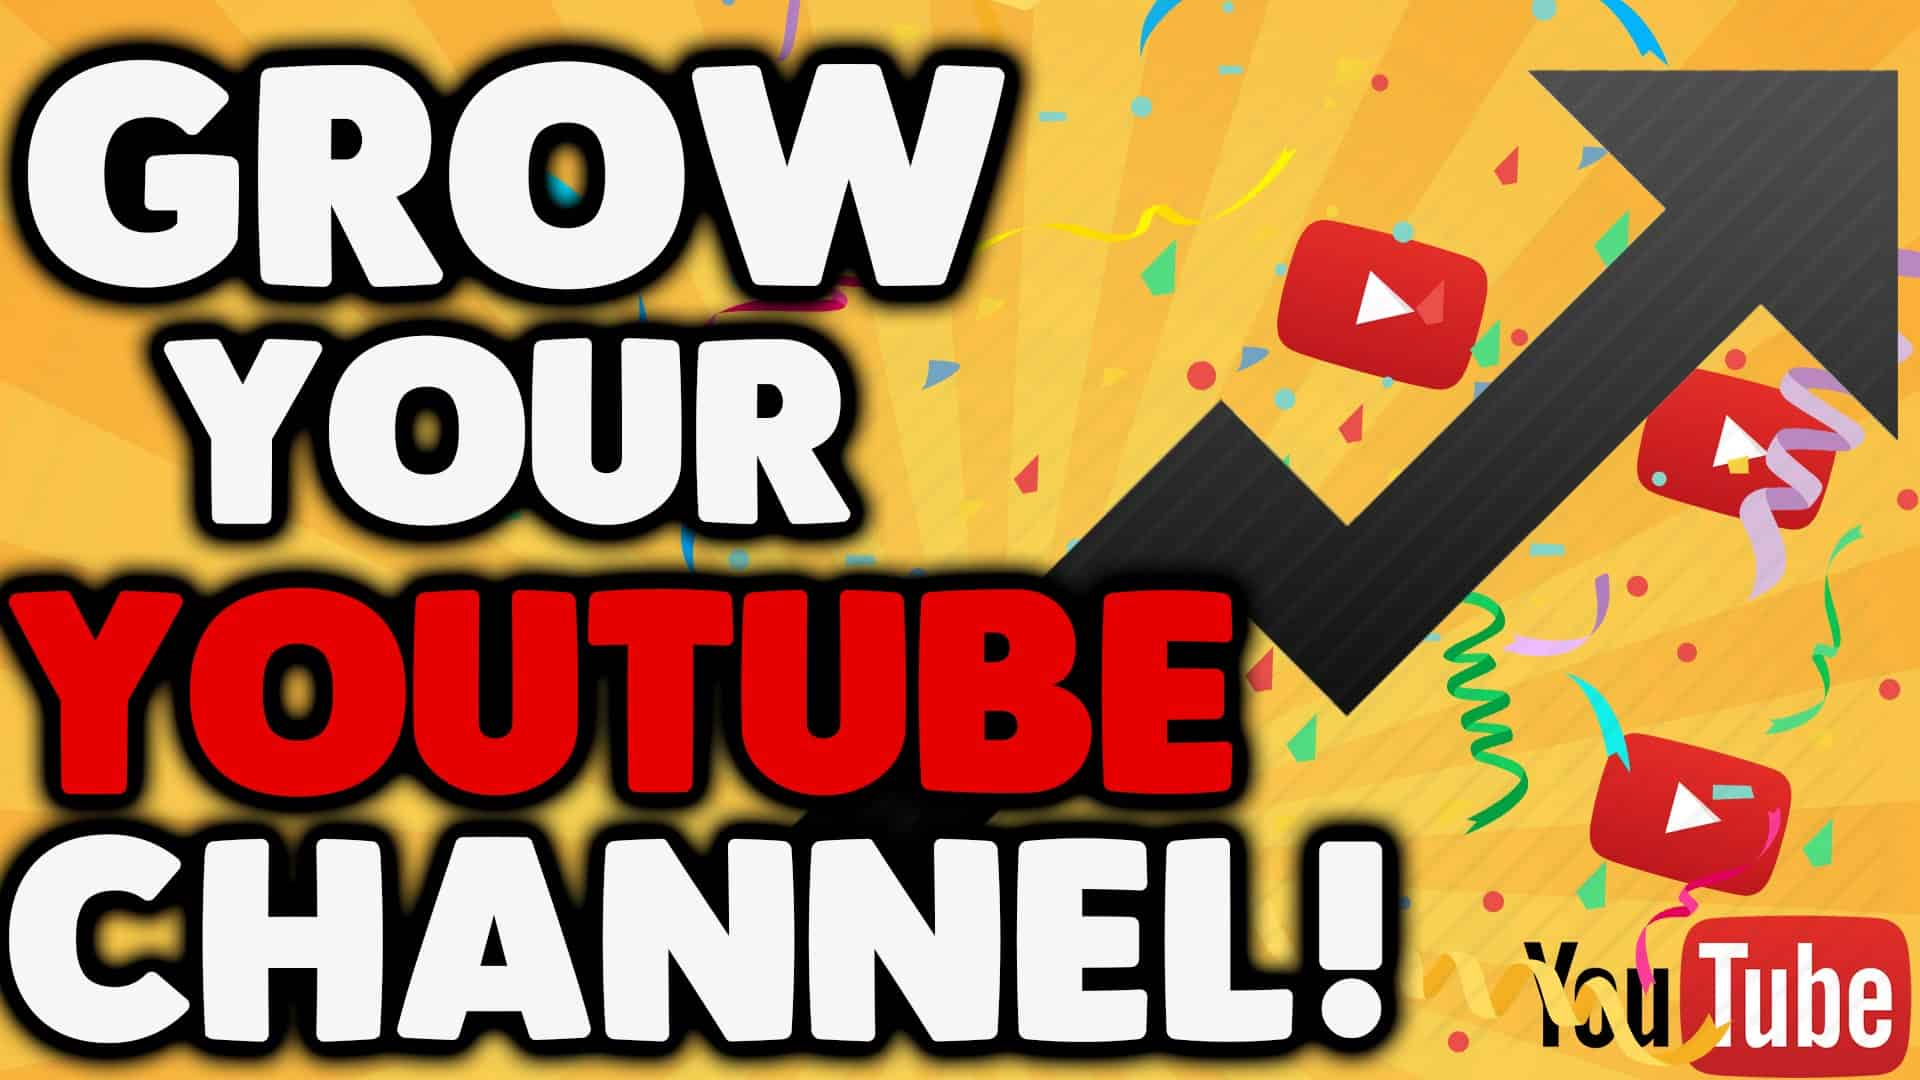 9 Steps To Grow Your YouTube Channel 10x